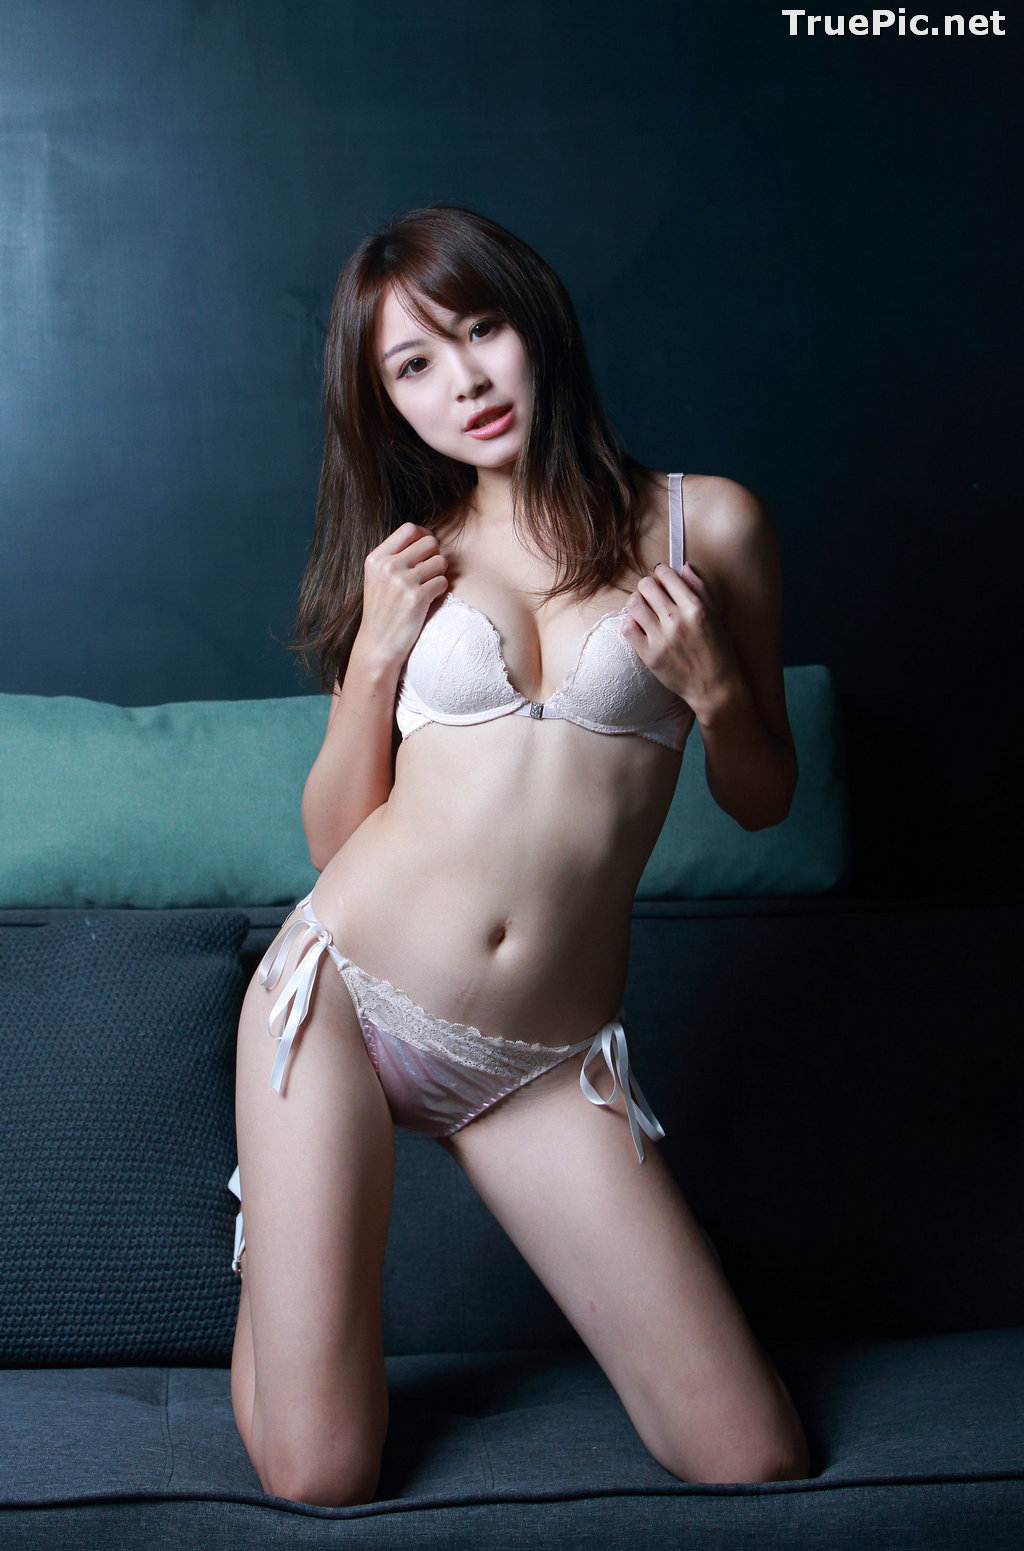 Image Taiwanese Model - Ash Ley - Sexy Girl and White Lingerie - TruePic.net - Picture-3